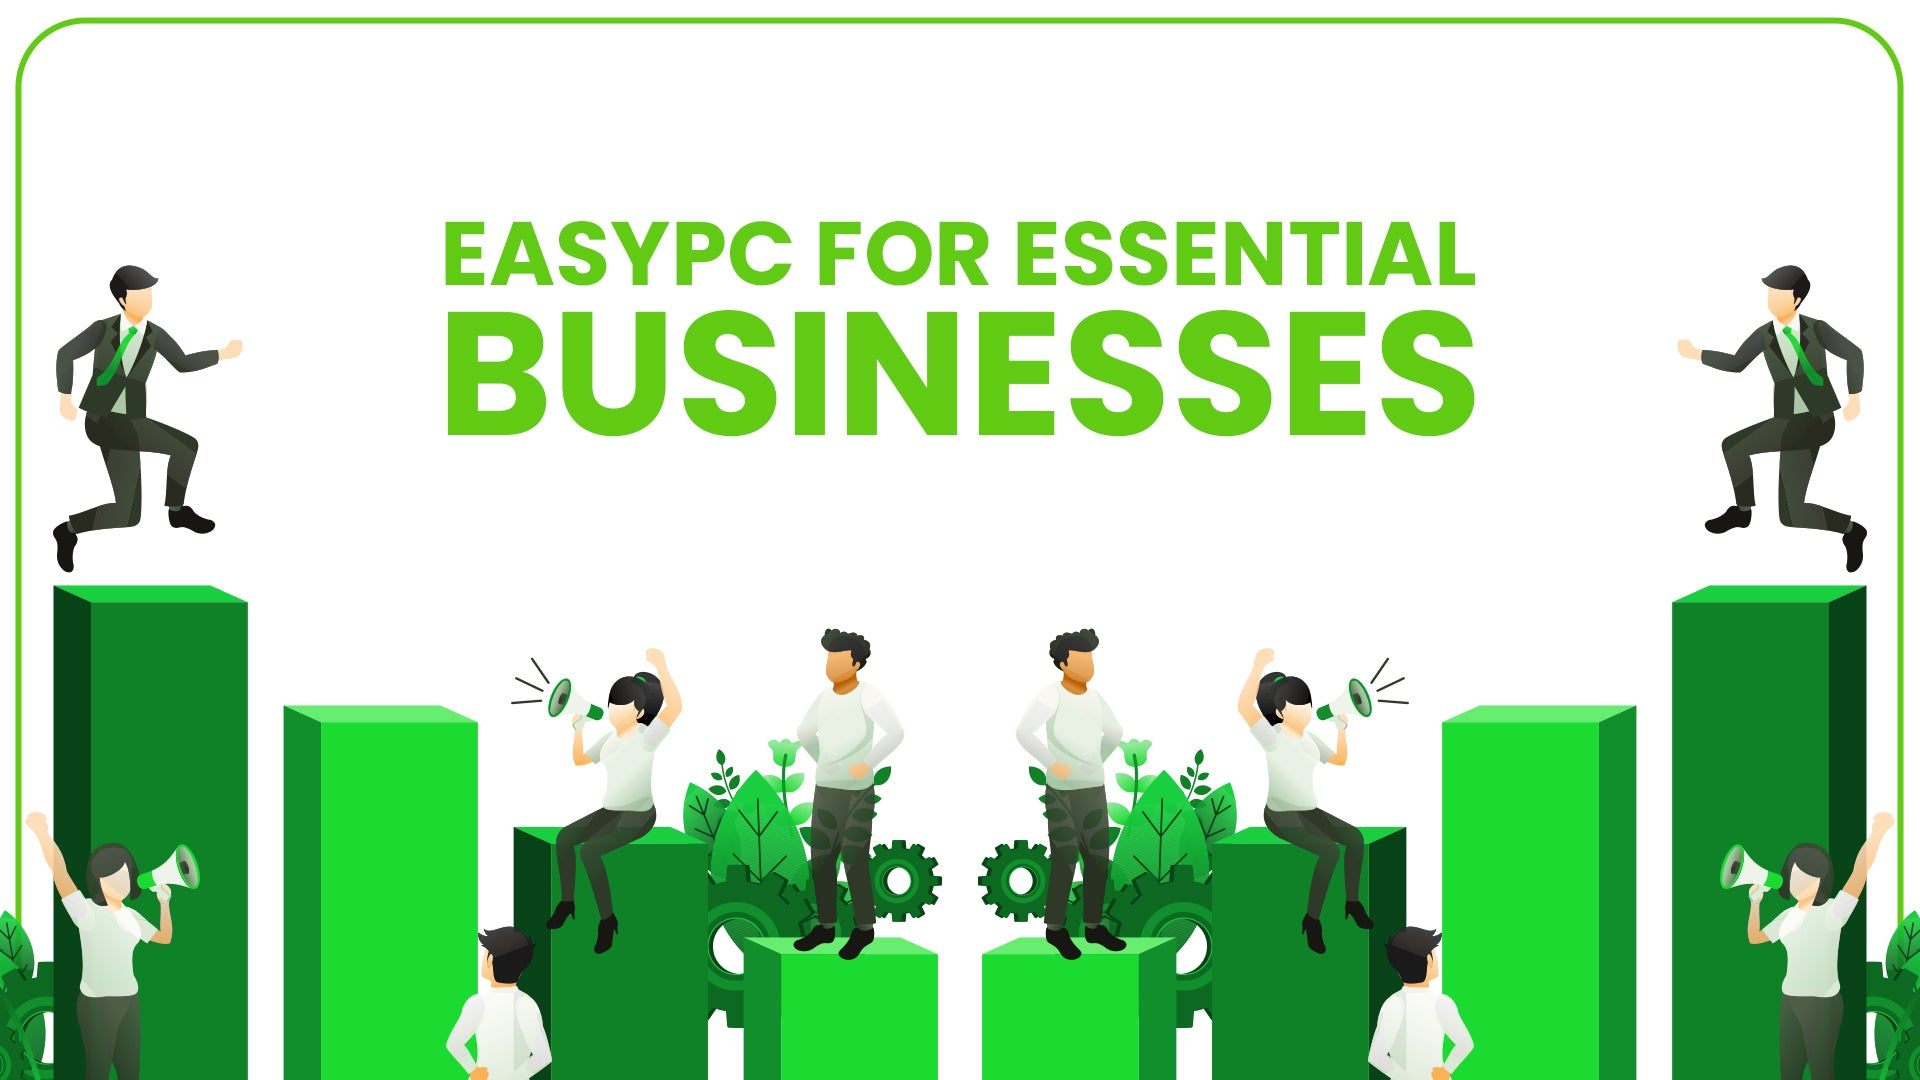 EasyPC for Essential Businesses